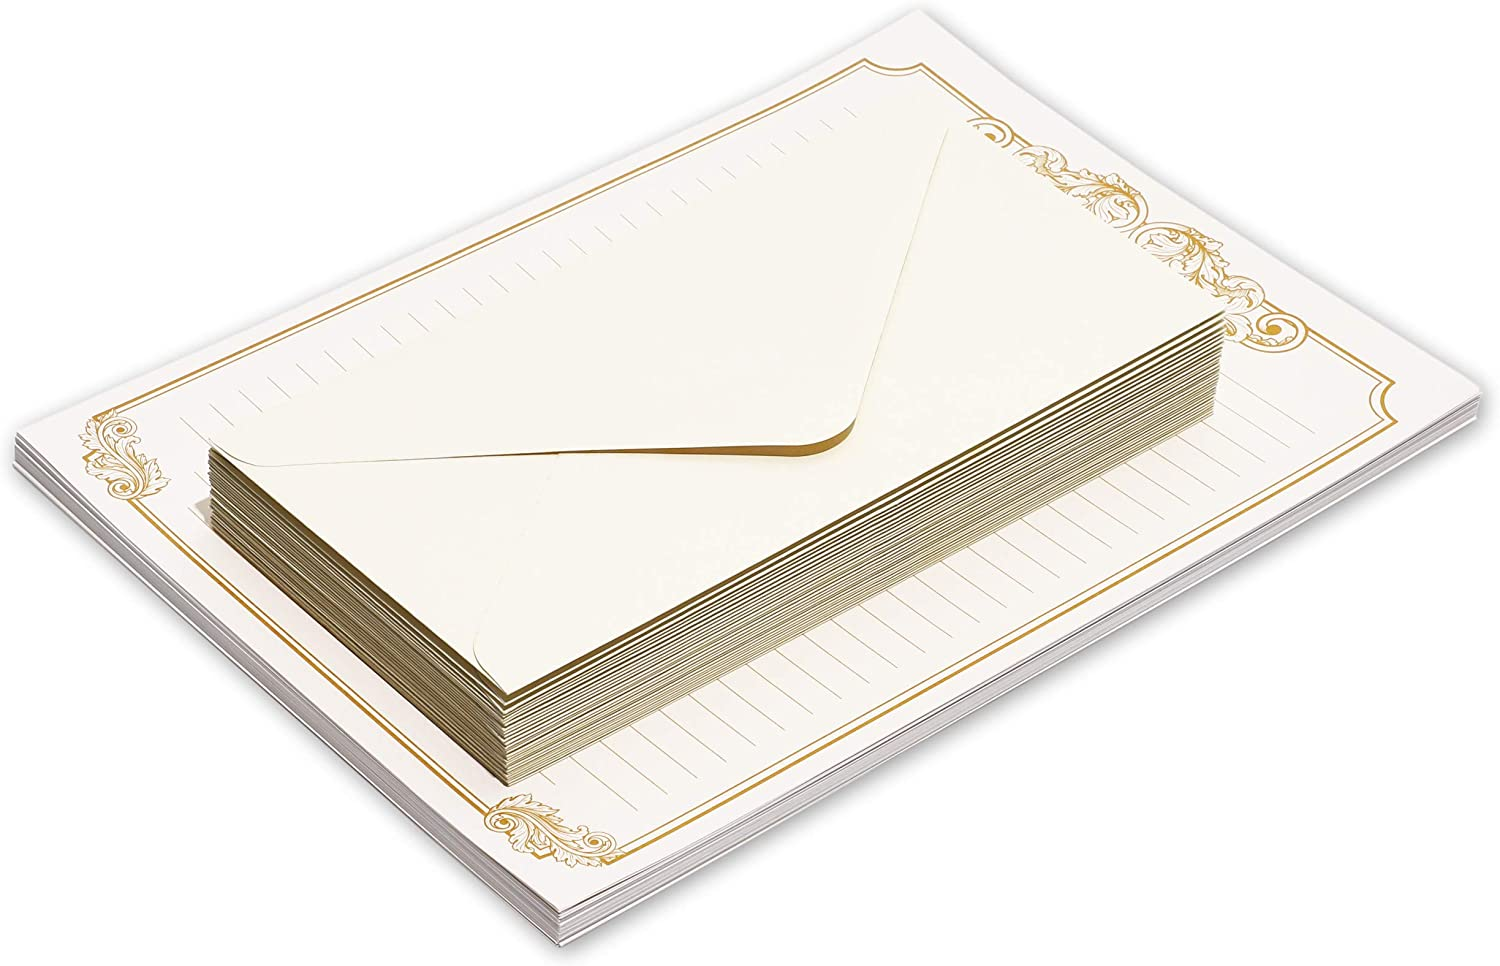 This is an image of a stationary paper with envelopes above it.